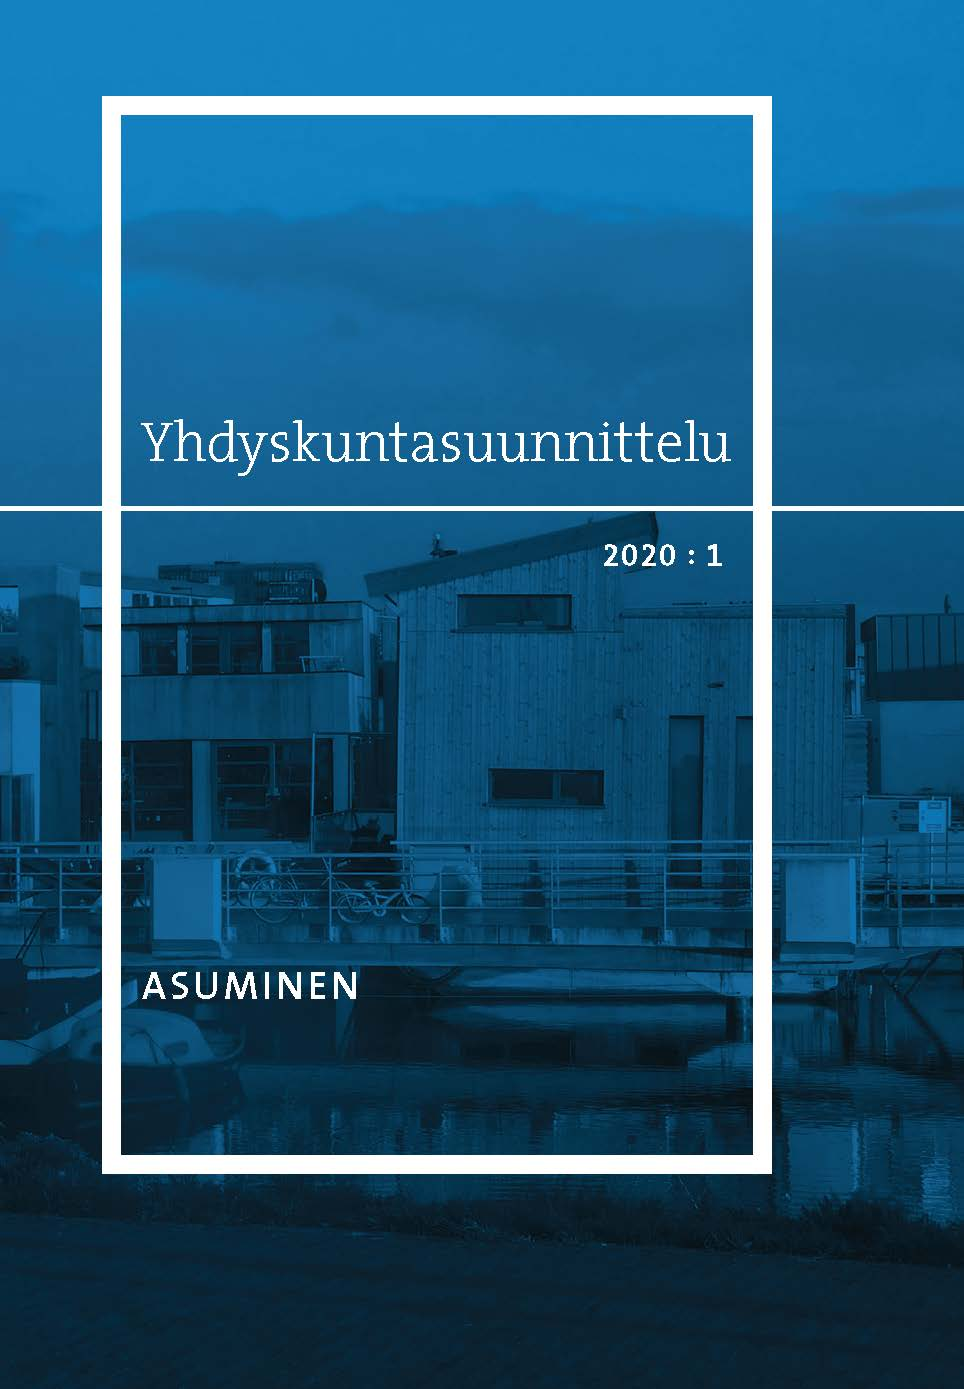 Vol 58 Nro 1 (2020): Asuminen